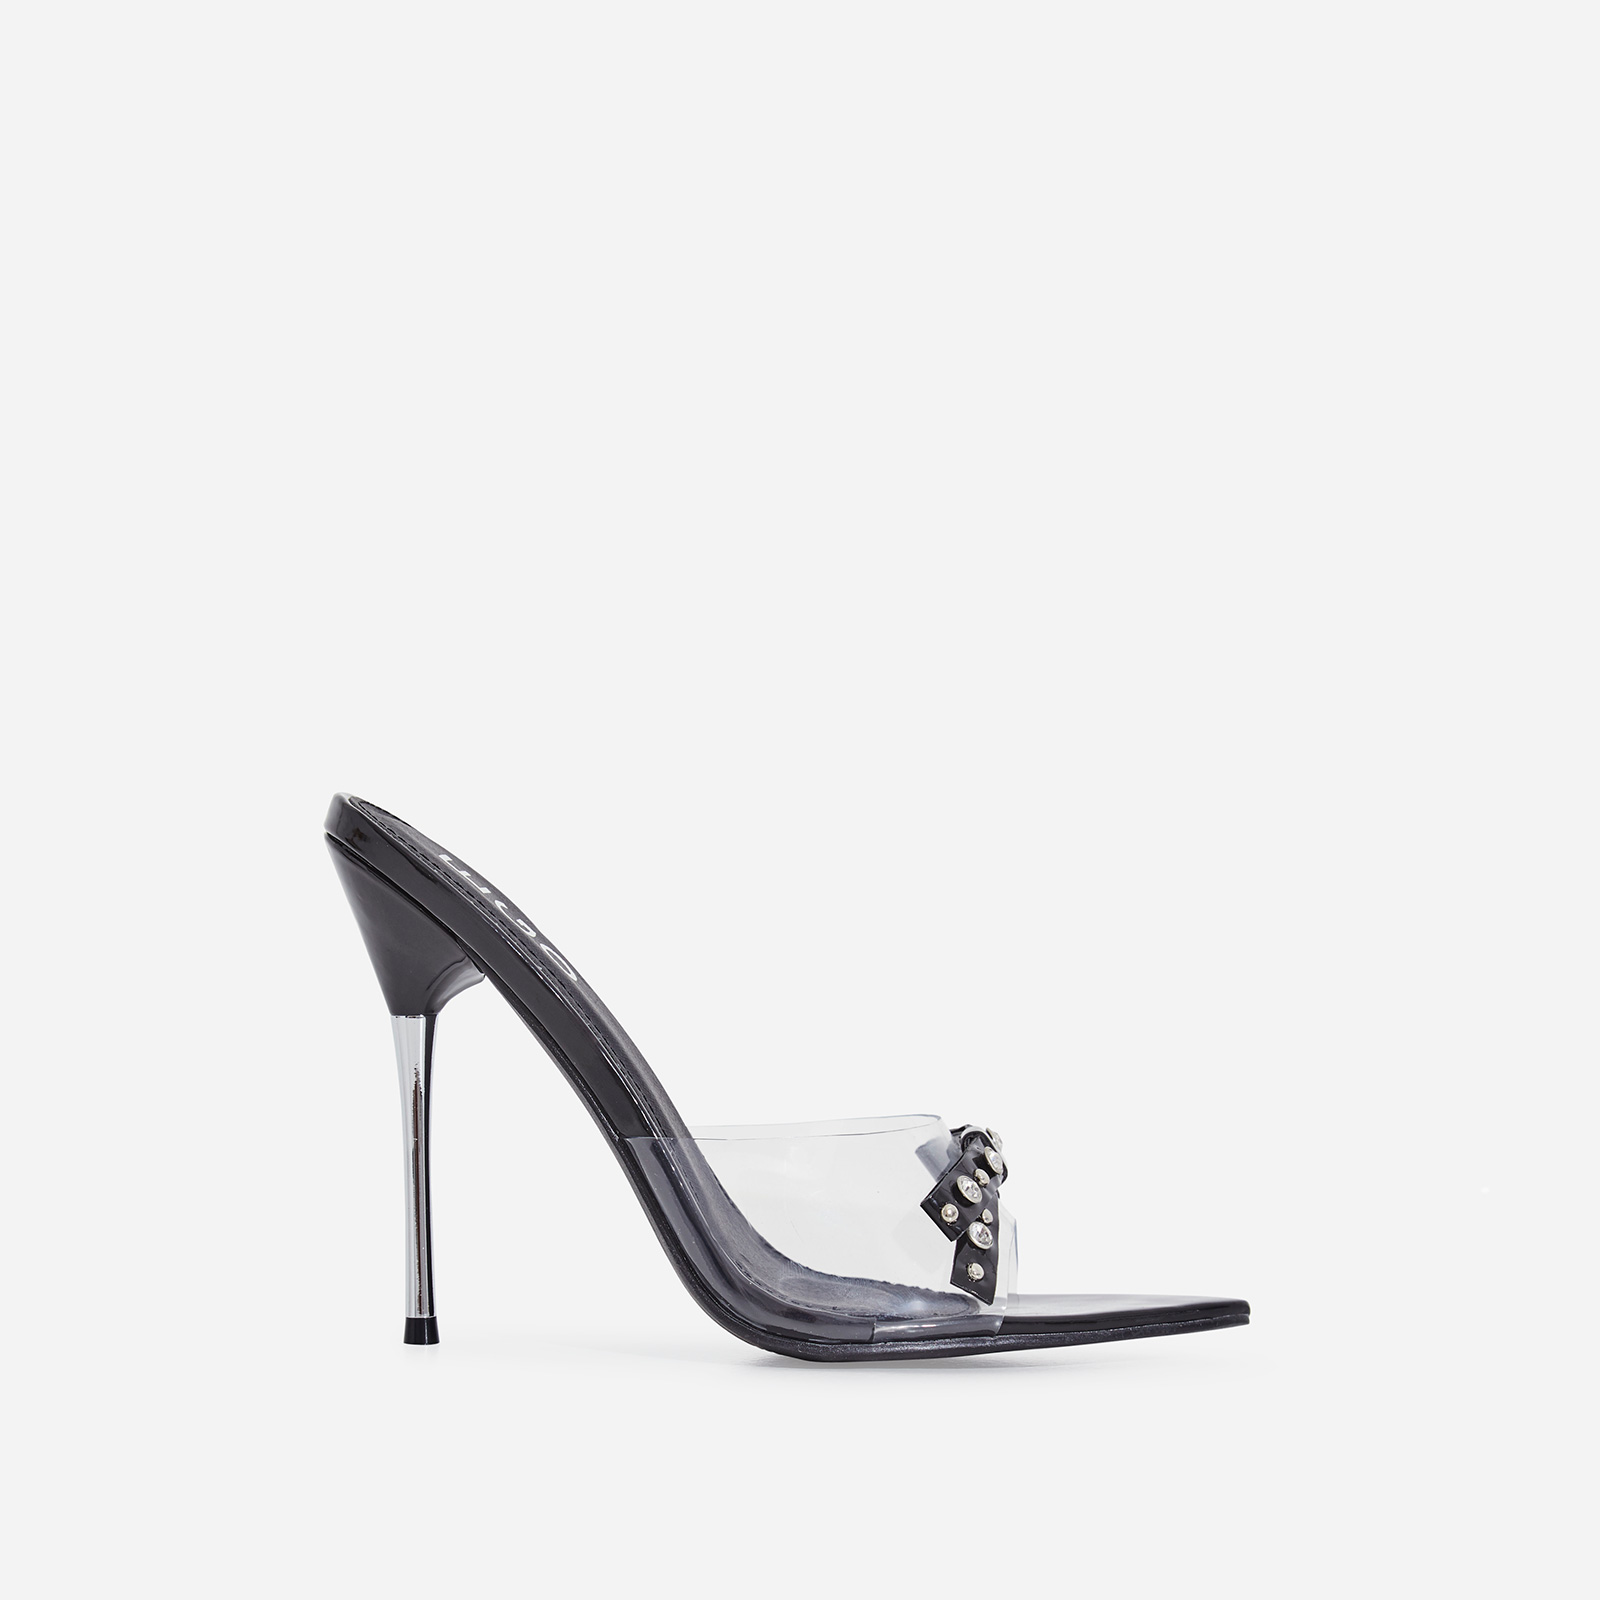 Gabb Studded Bow Detail Perspex Peep Toe Heel Mule In Black Patent